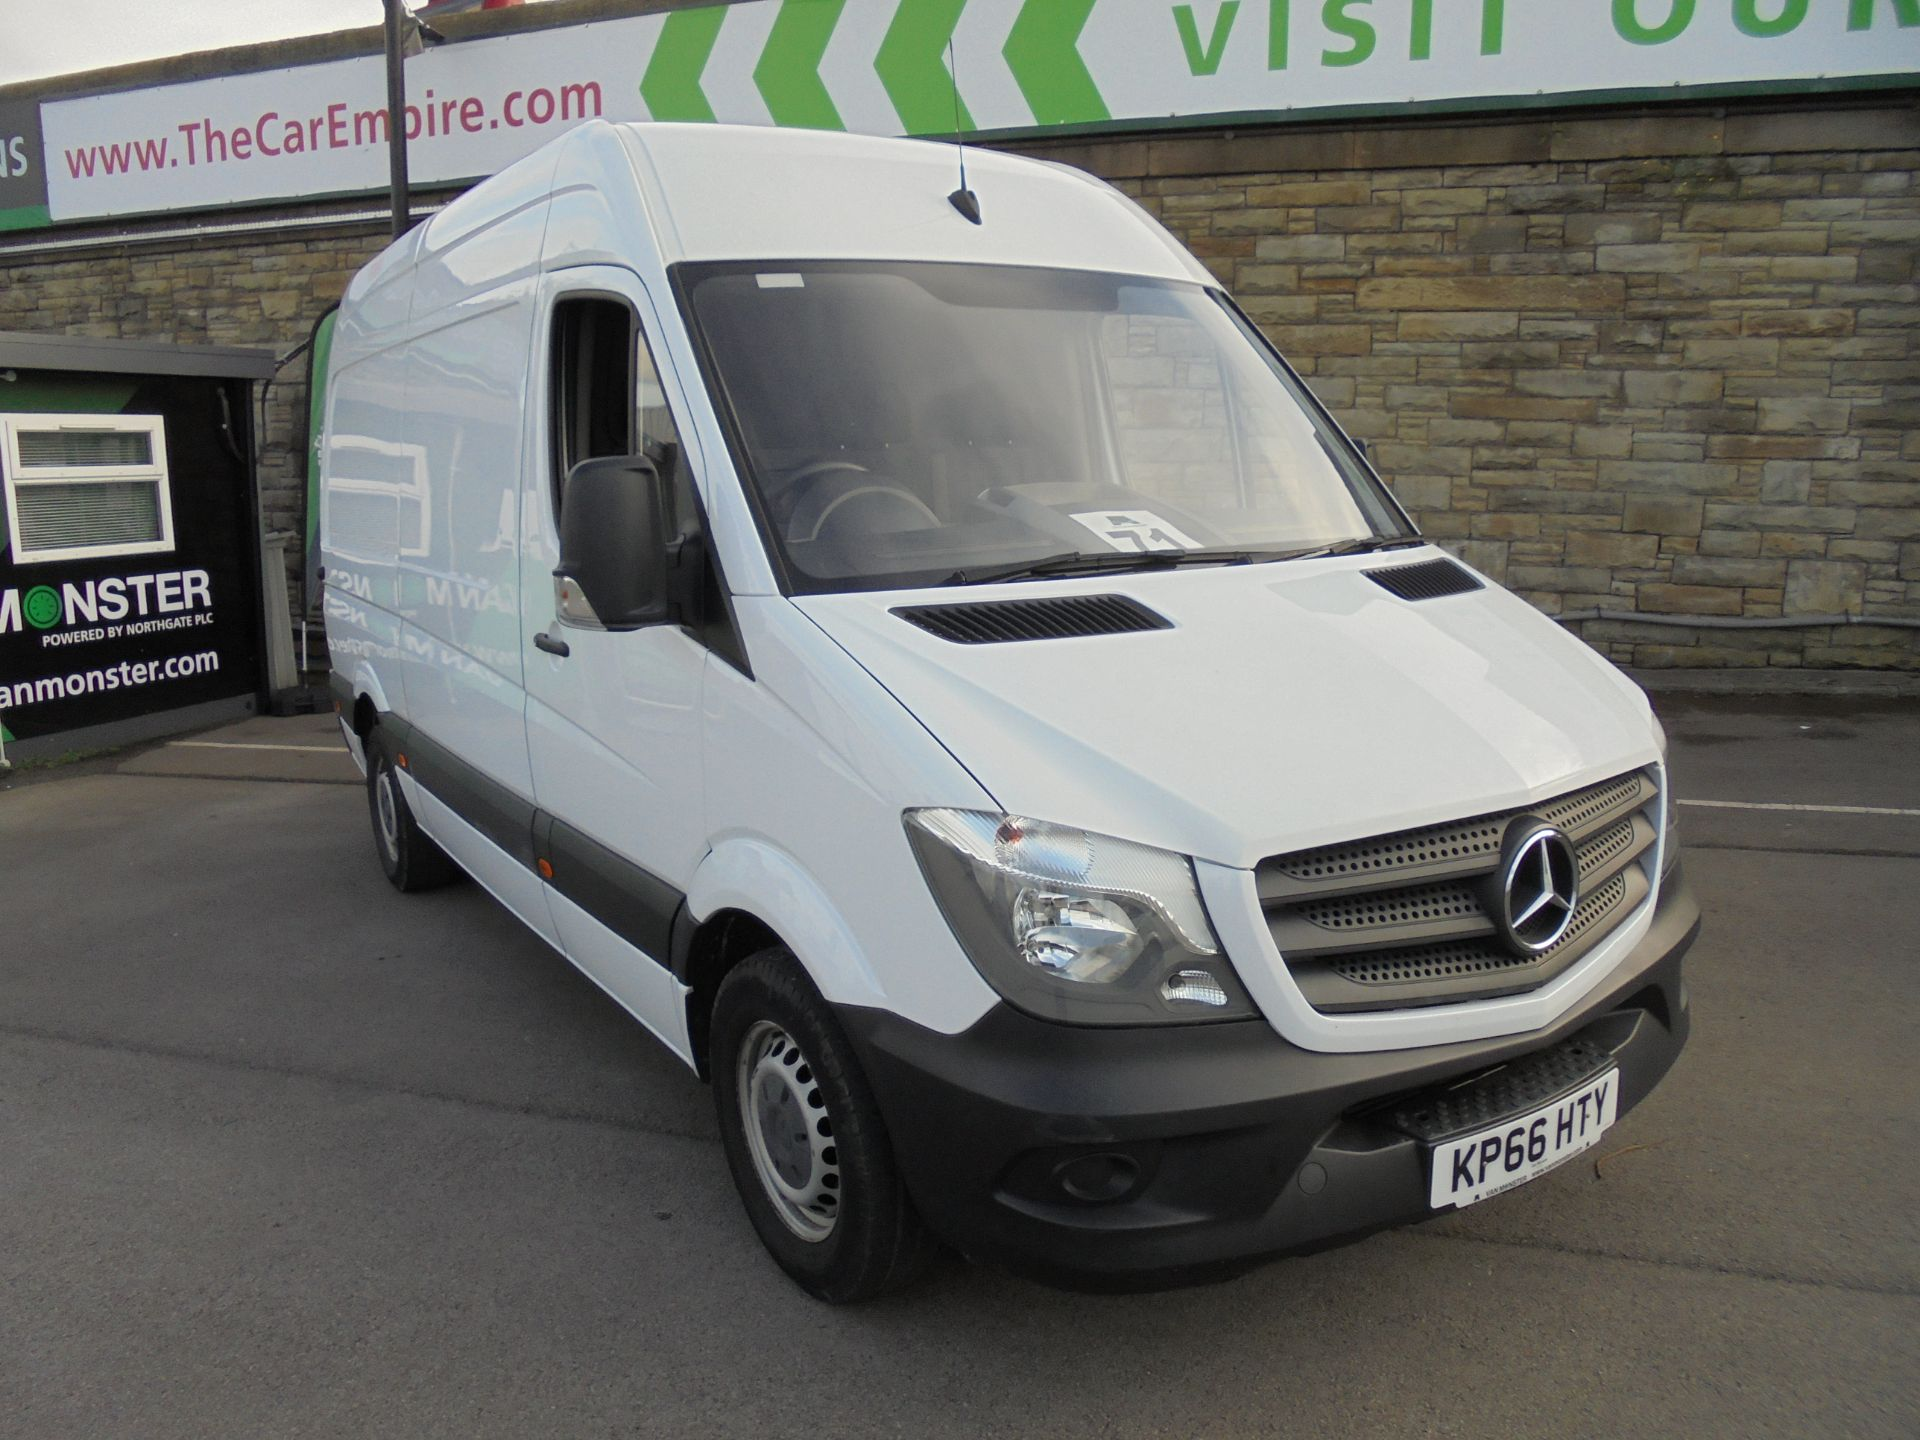 2016 Mercedes-Benz Sprinter 3.5T High Roof Van MWB (KP66HTY) Thumbnail 1